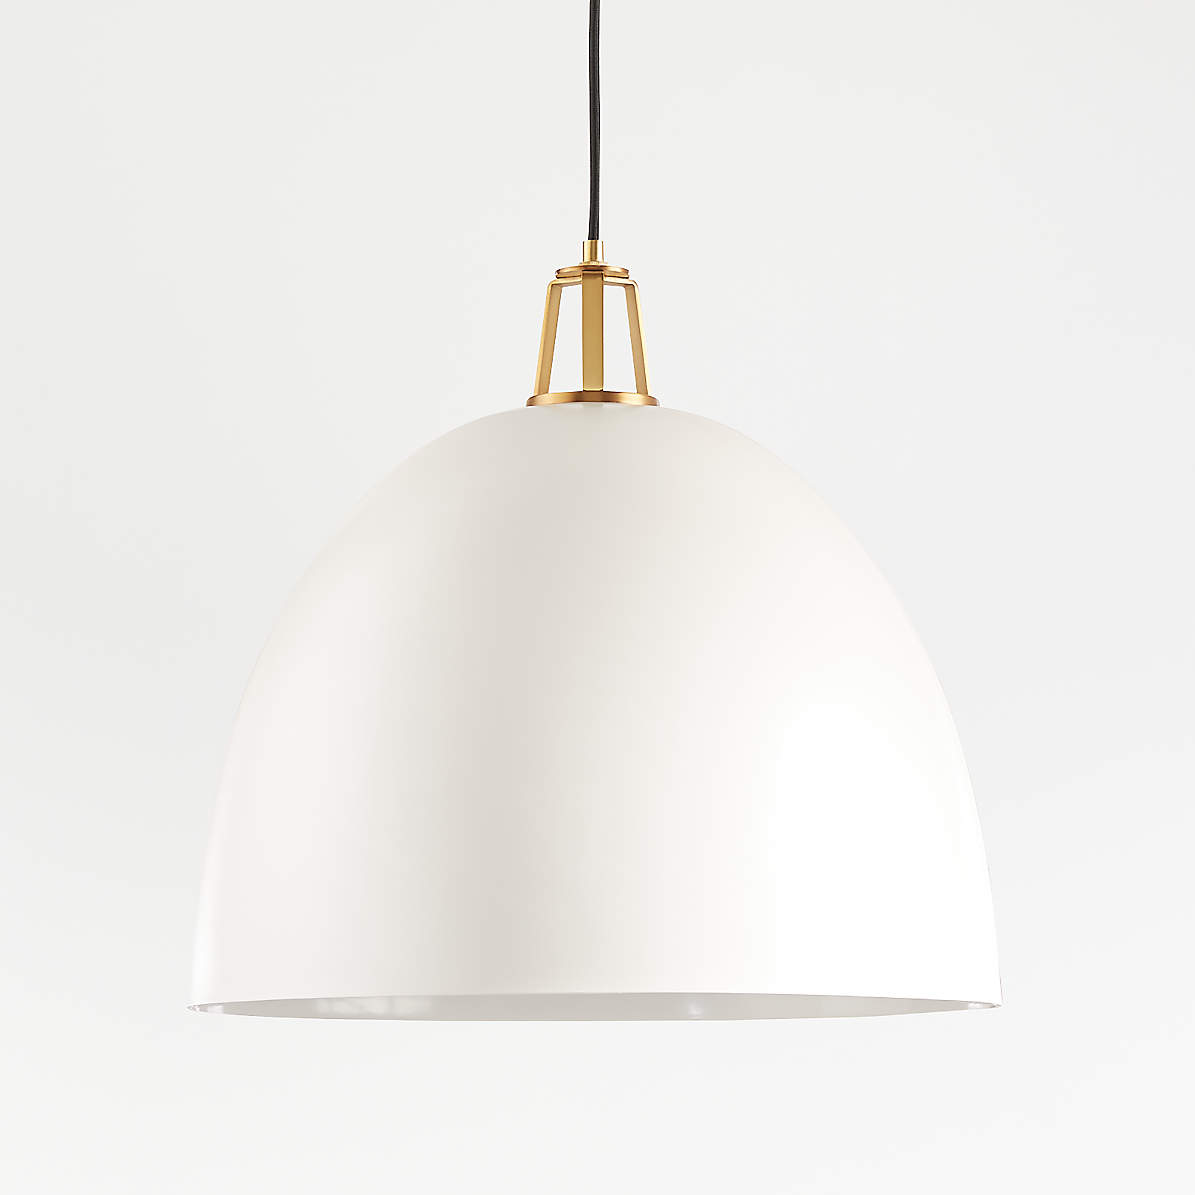 Maddox White Dome Pendant Light With Brass Socket Crate And Barrel